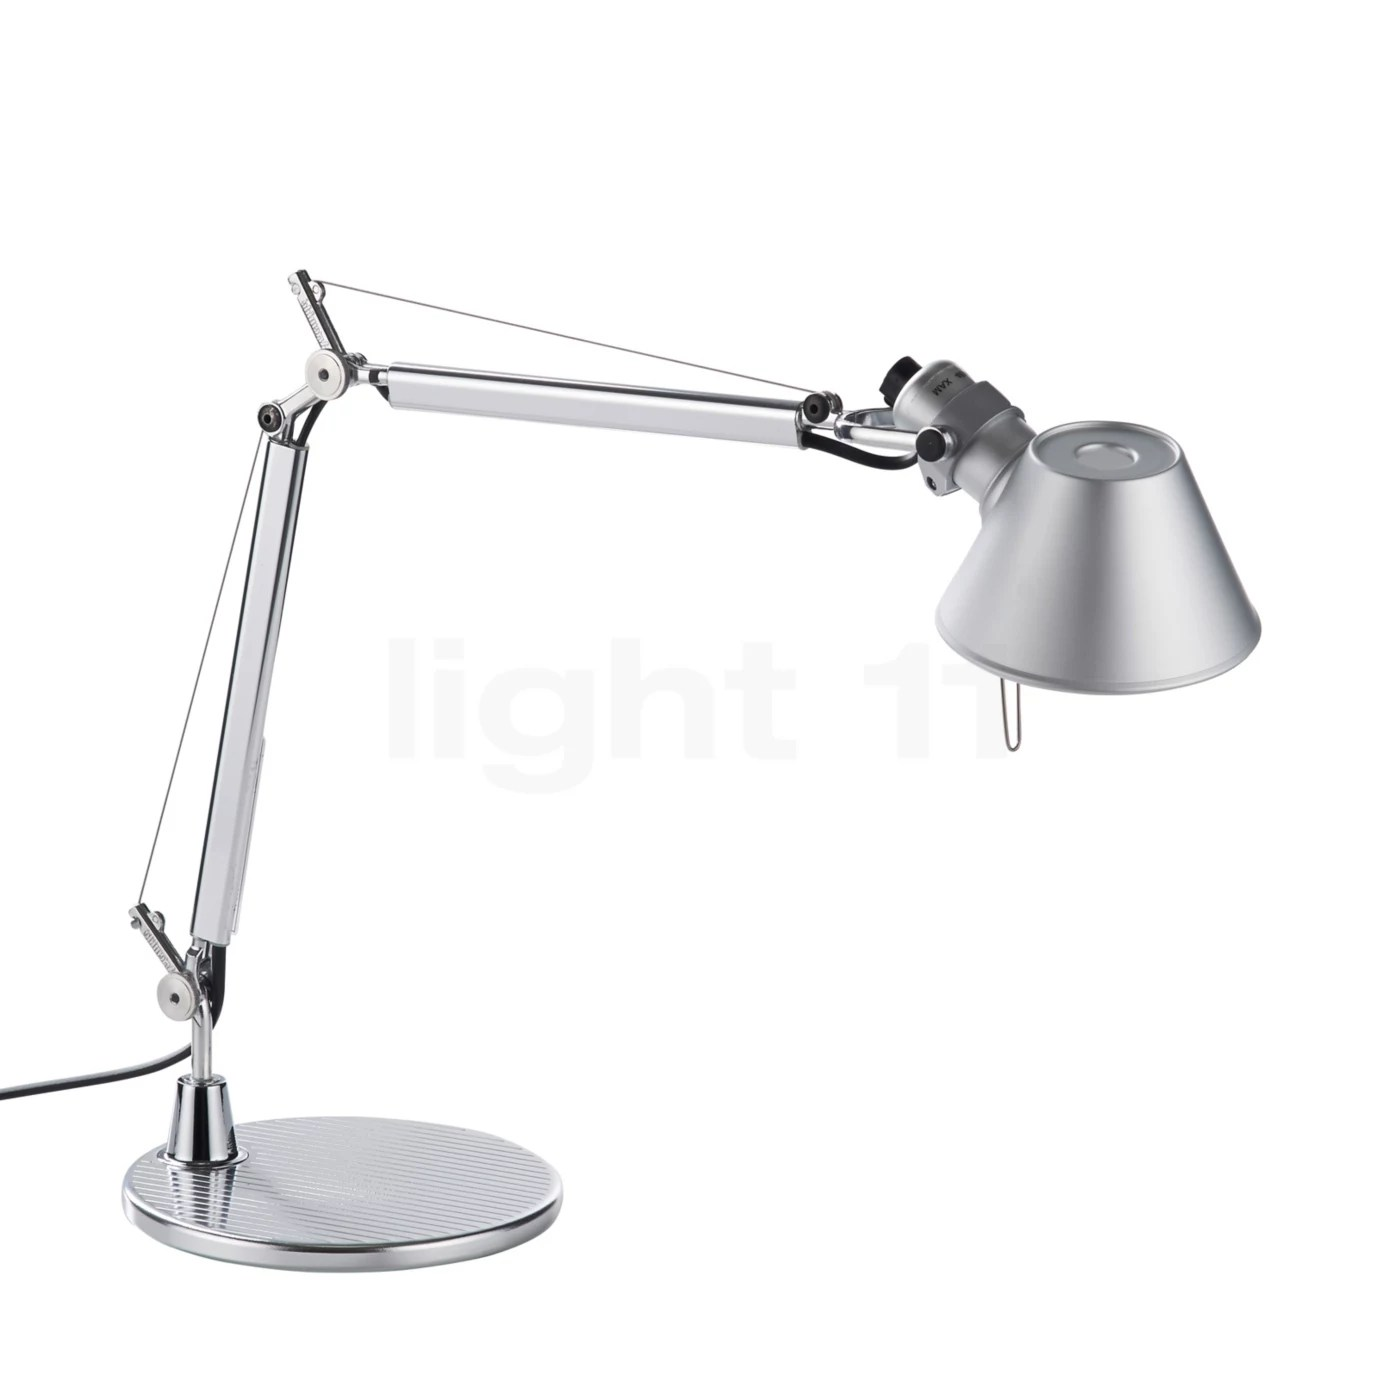 Artemide Schreibtischlampe Tolomeo Micro With Base By Artemide Buy It At Light11 Eu